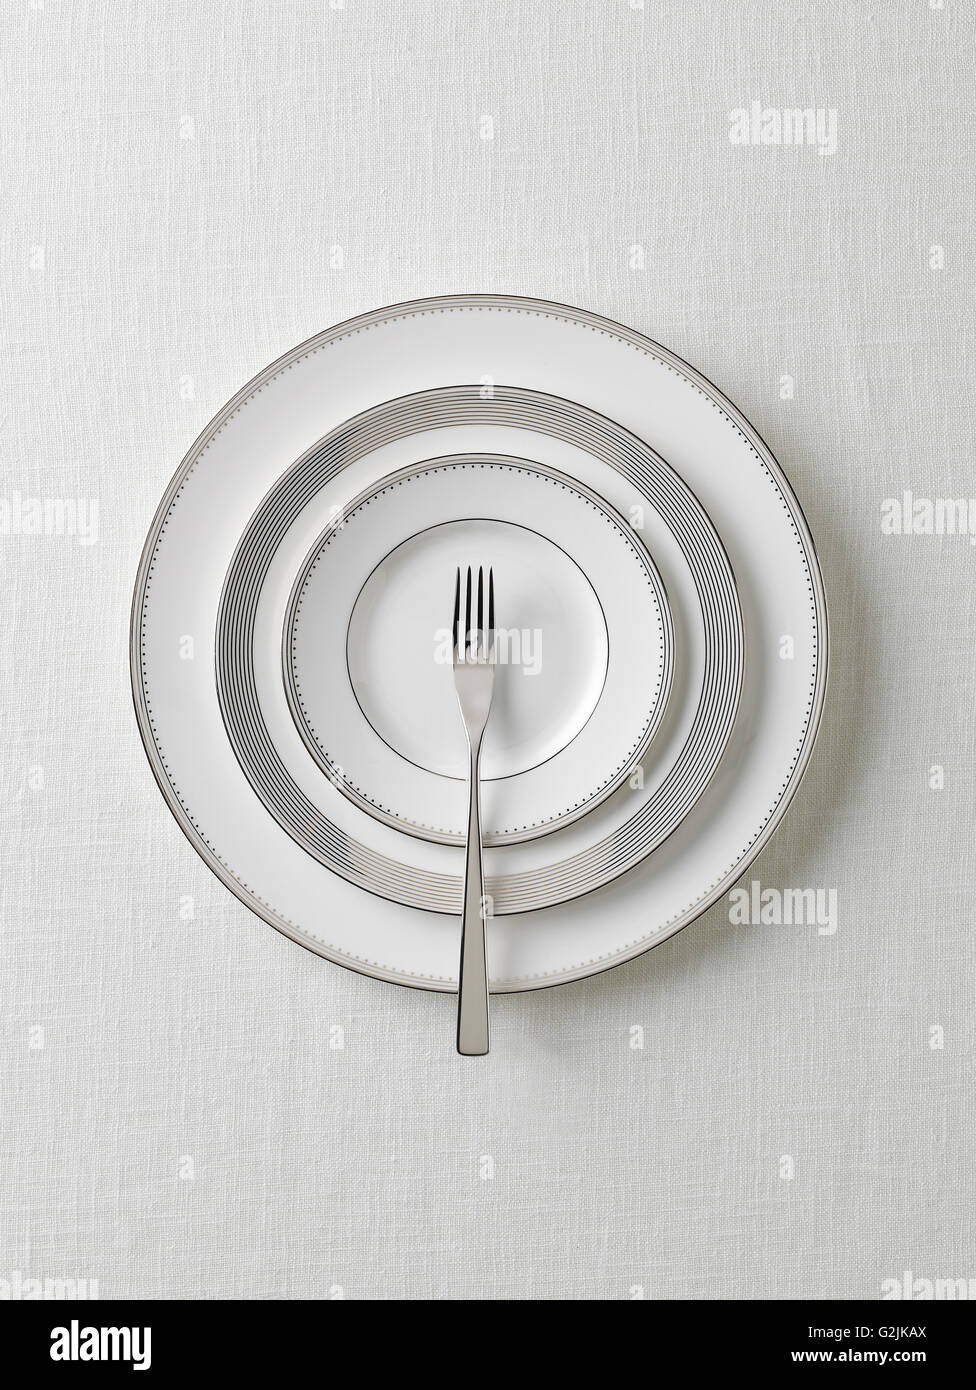 White Plates With Fork - Stock Image